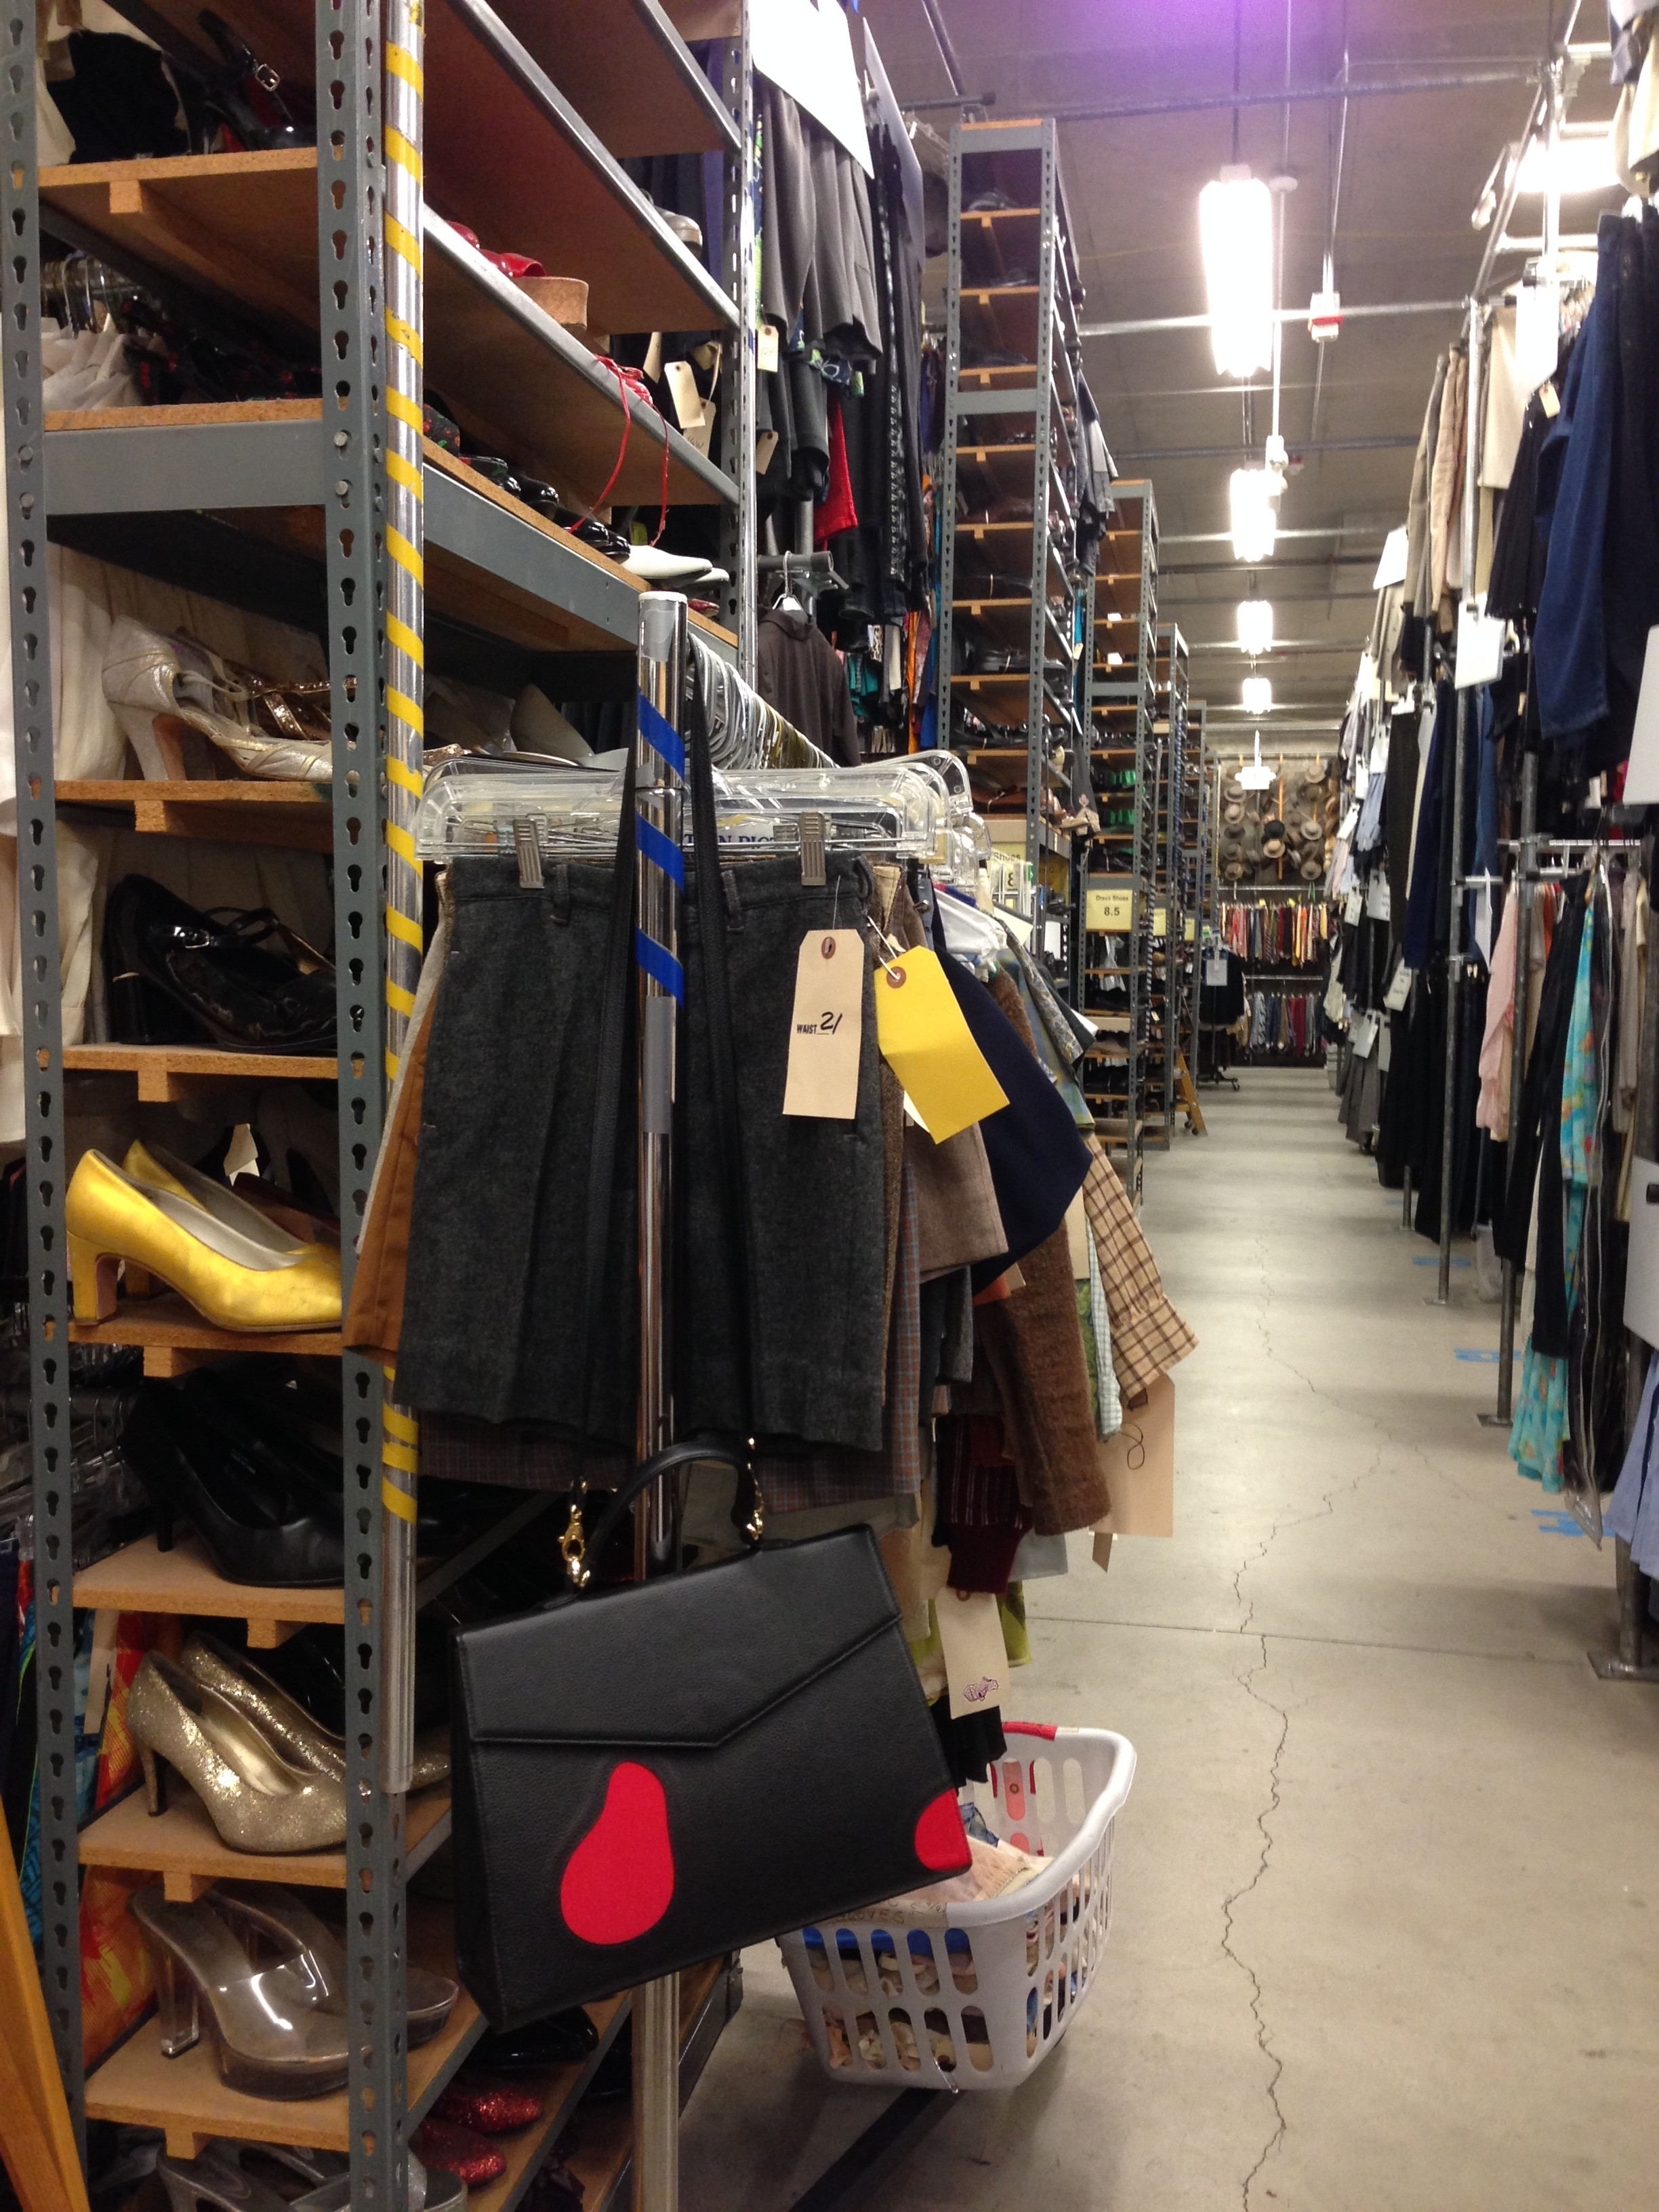 My workday often involves me pulling from a costume house.  This is Warner Bros. Costumes and there are racks and racks of clothes and accessories from all eras.